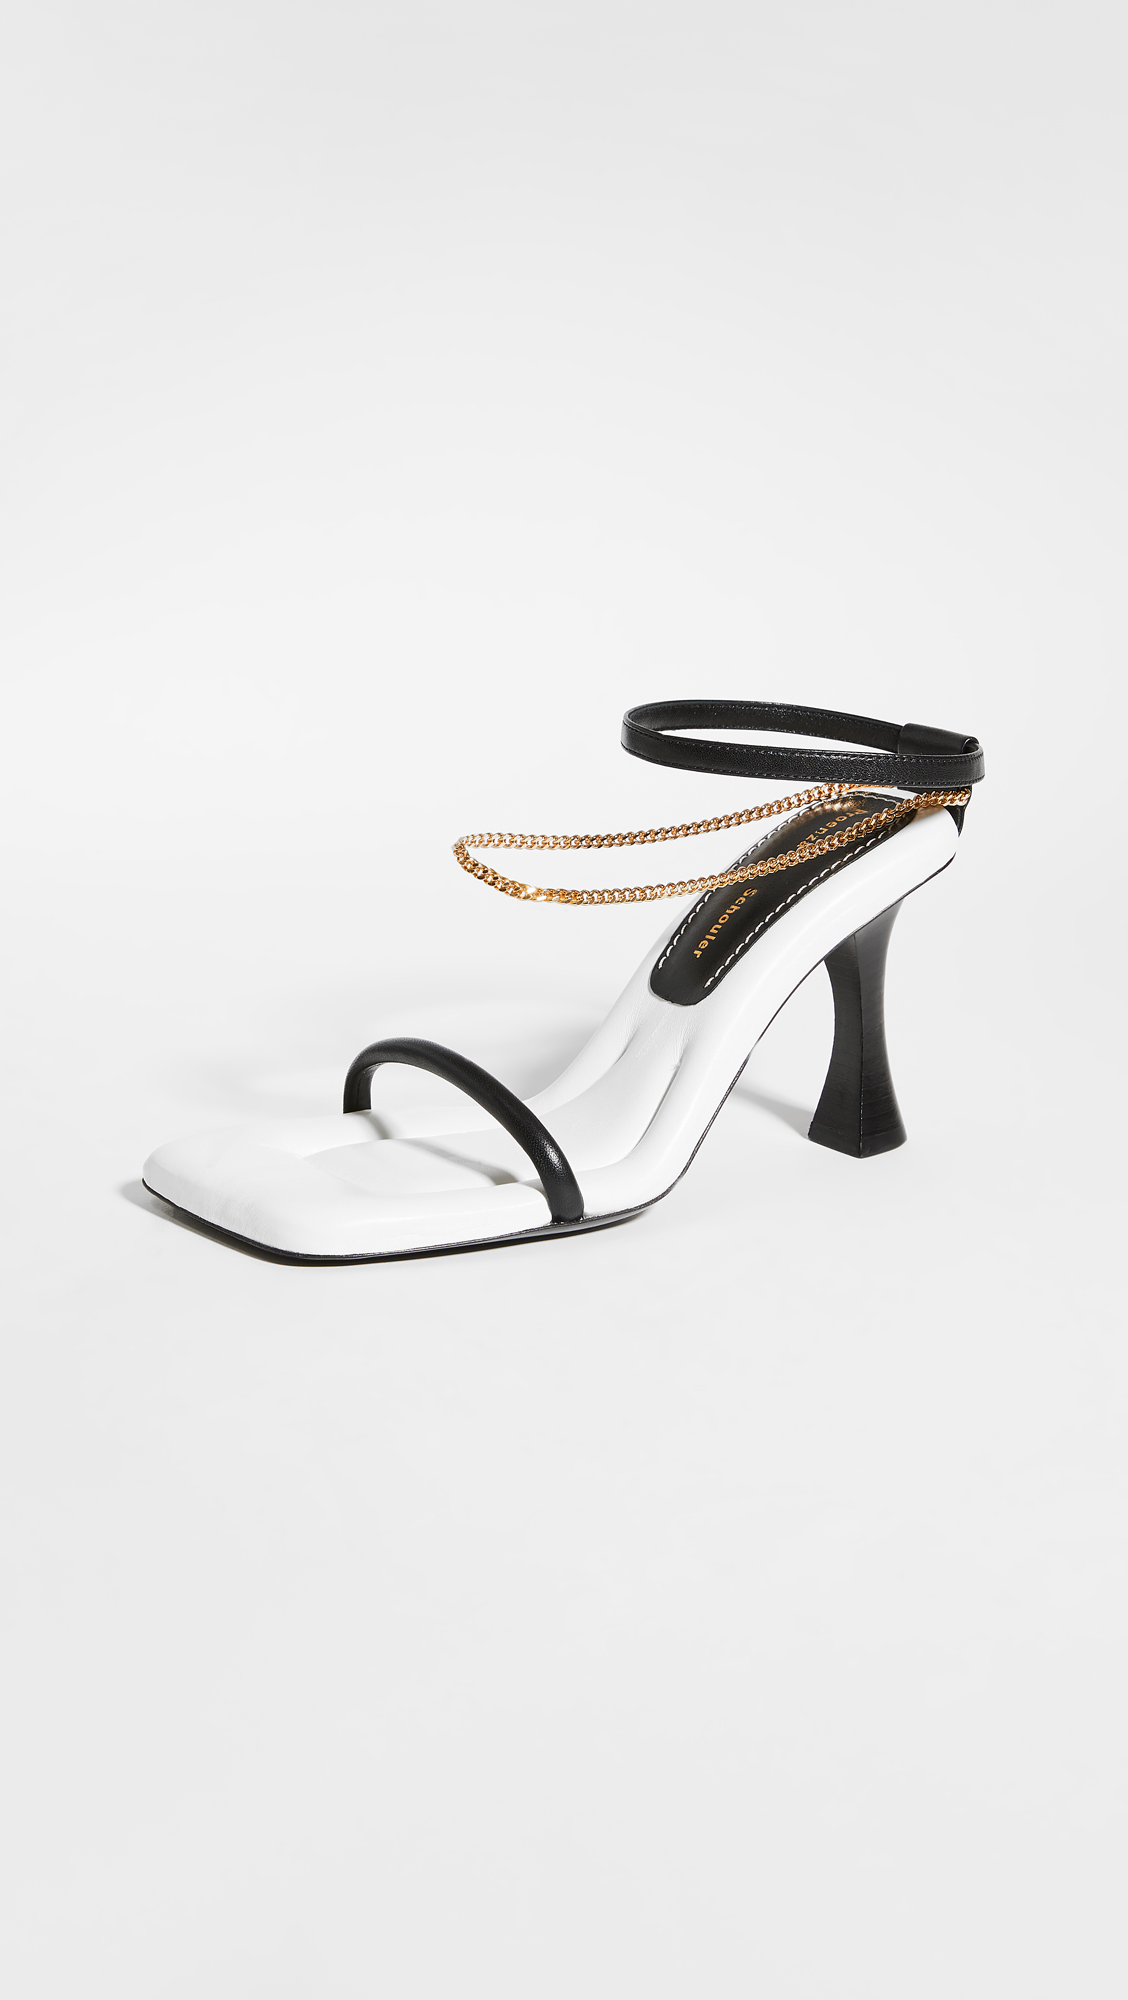 Proenza Schouler Chain Strap High Sandals